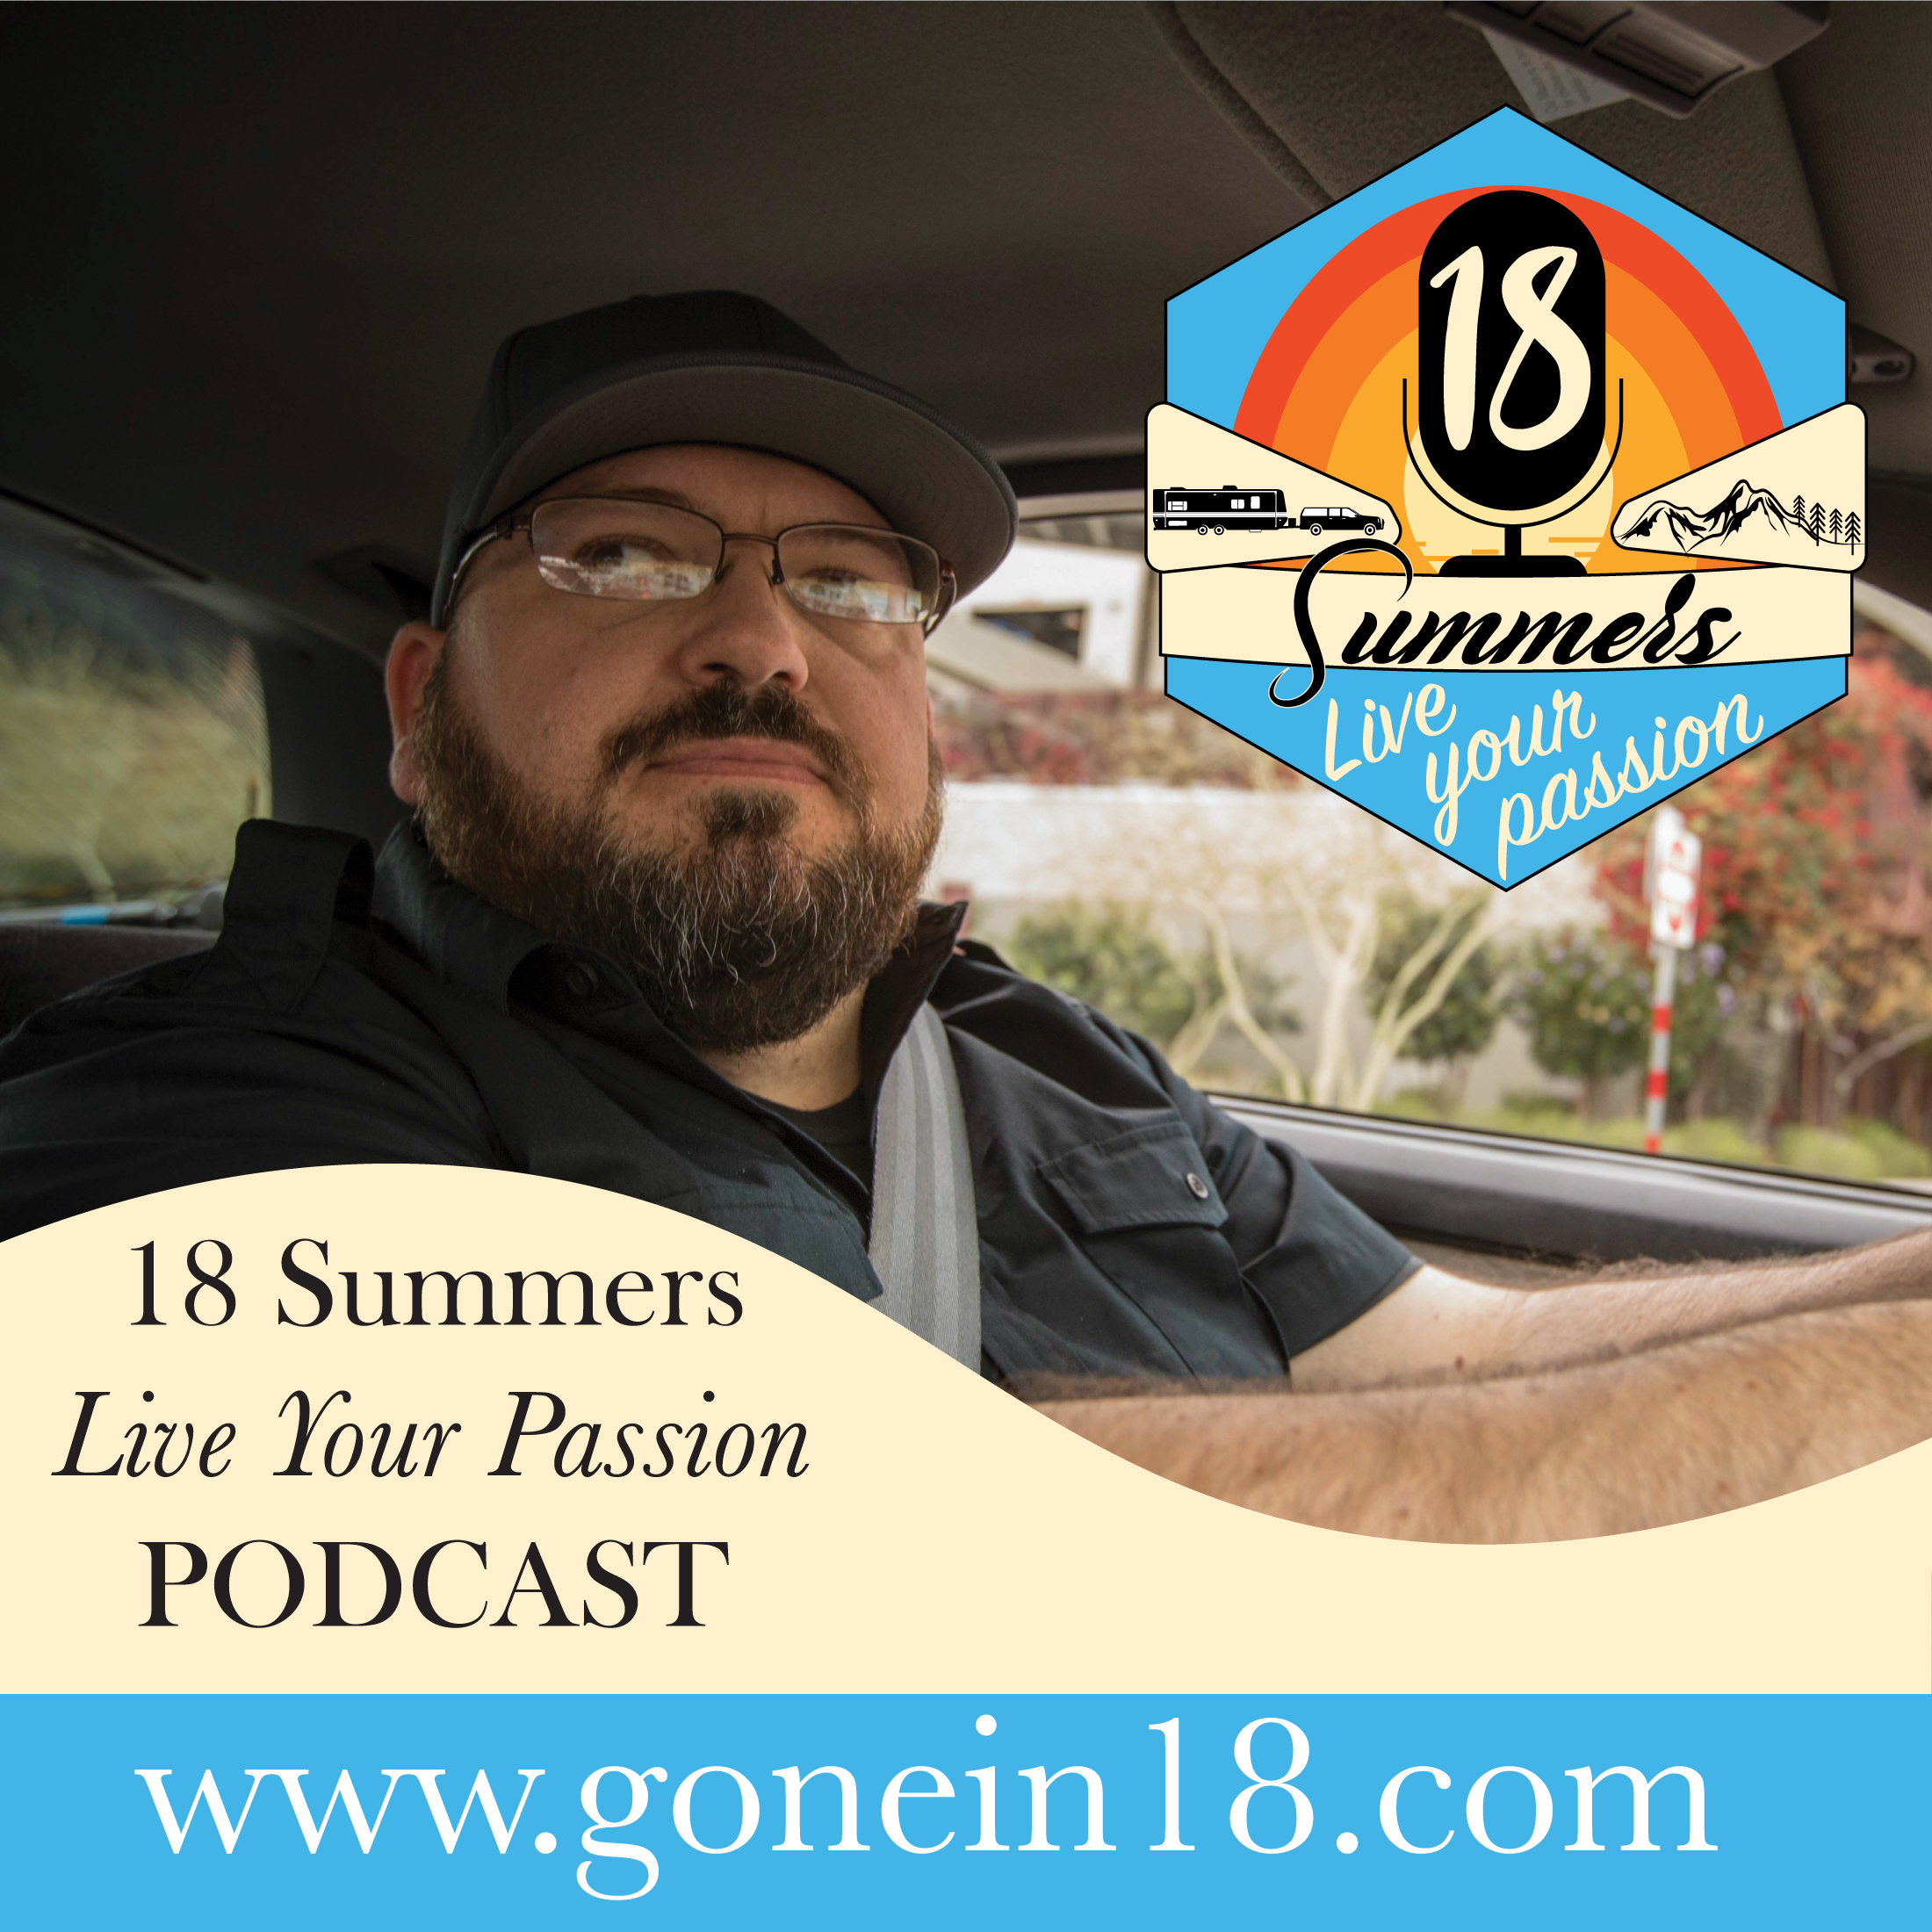 18 Summers Live Your Passion podcast show art